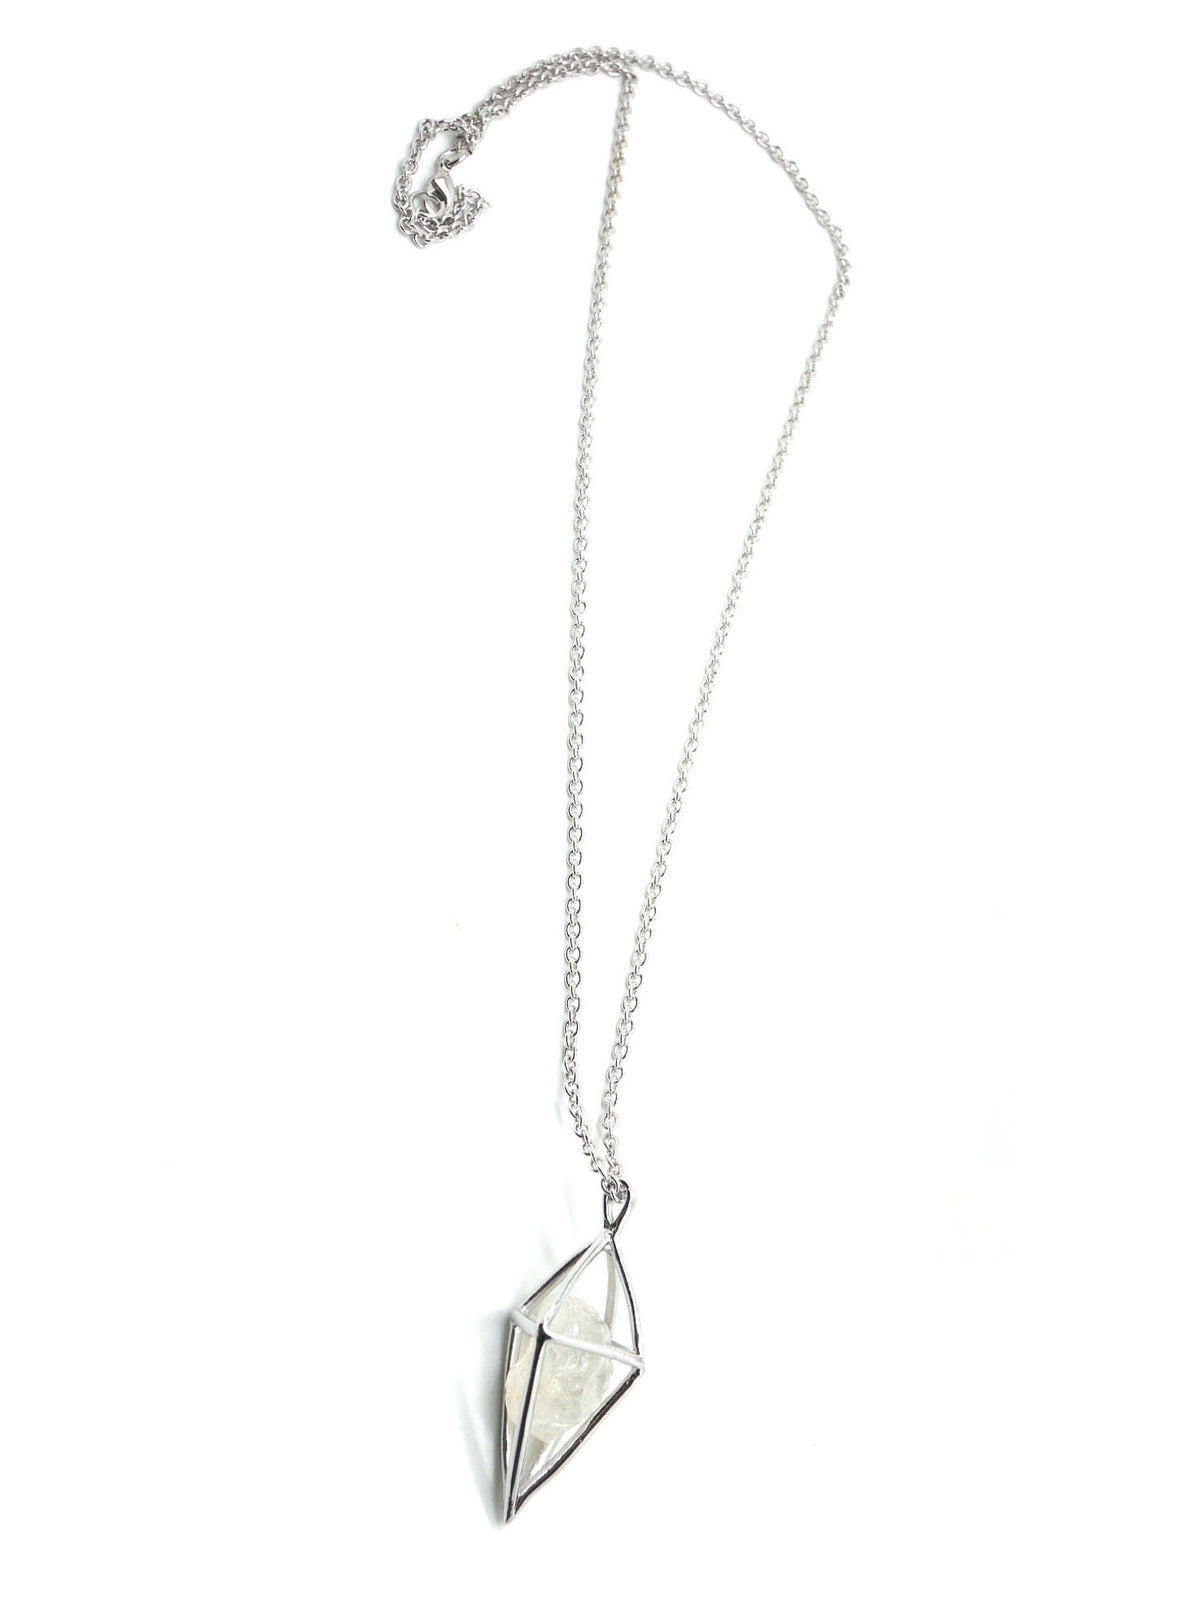 Diamond Stone Necklace - Rhodium - White Quartz